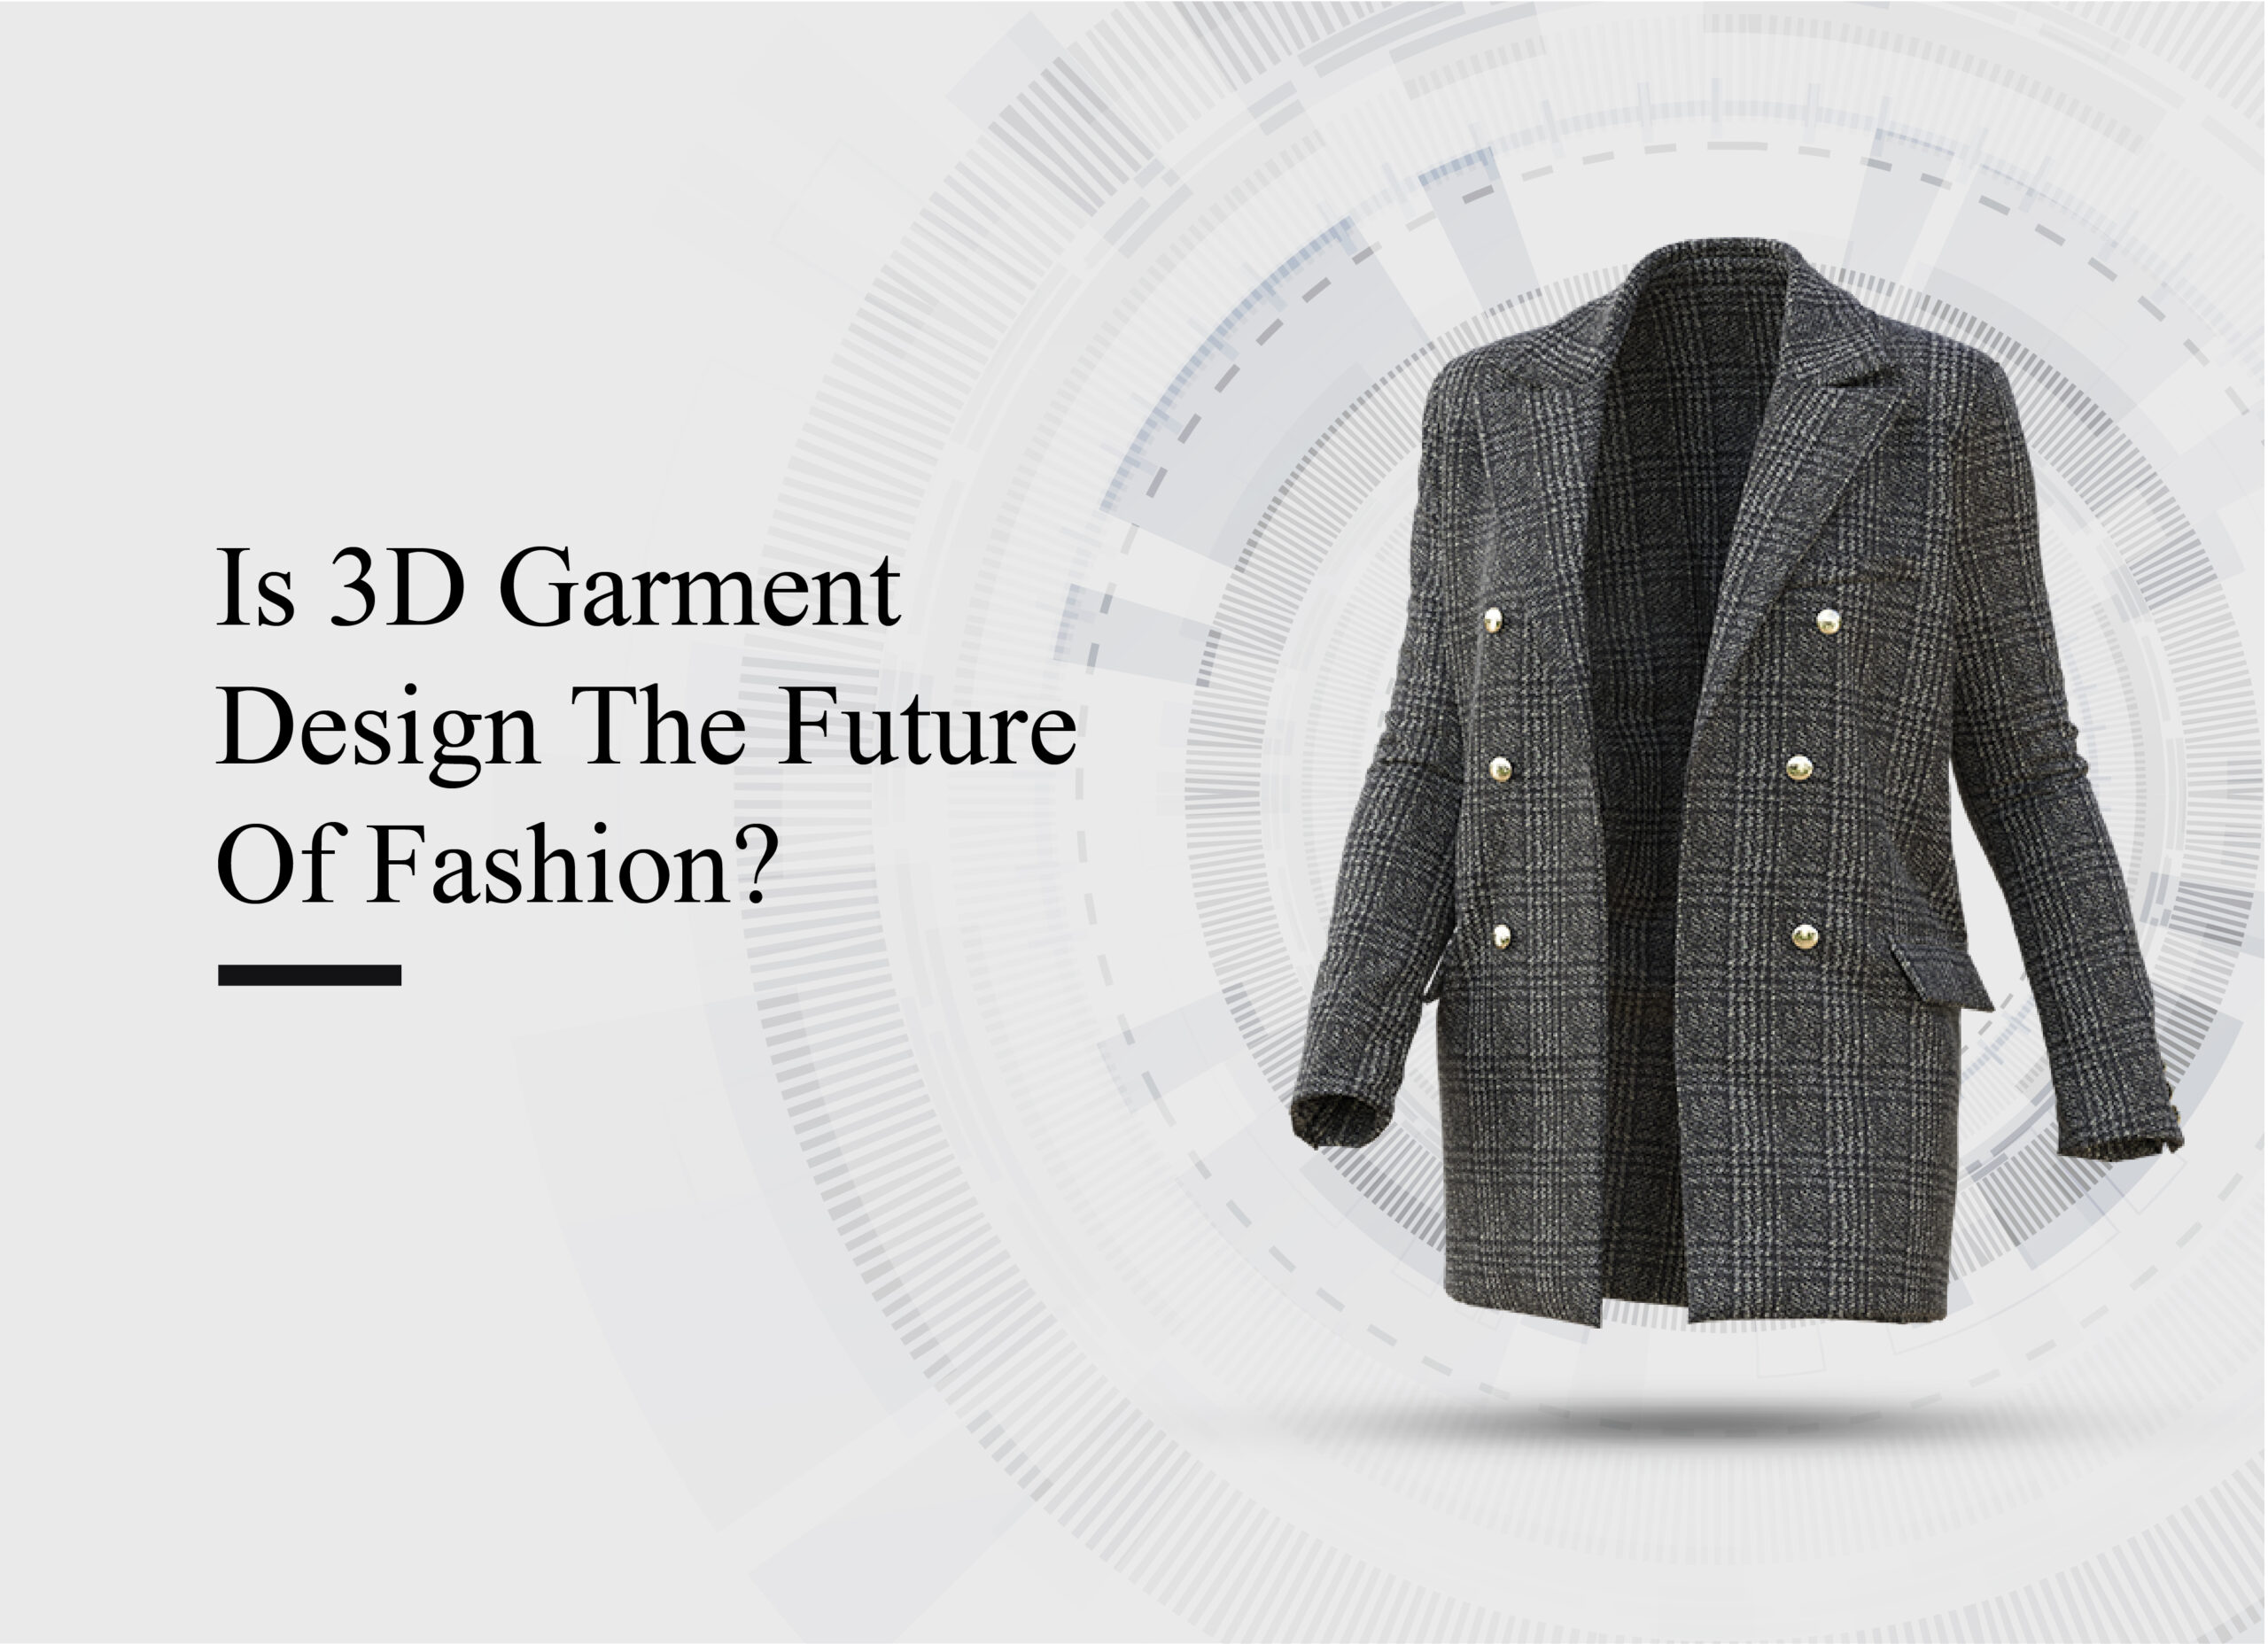 Is 3D Garment Design The Future Of Fashion?